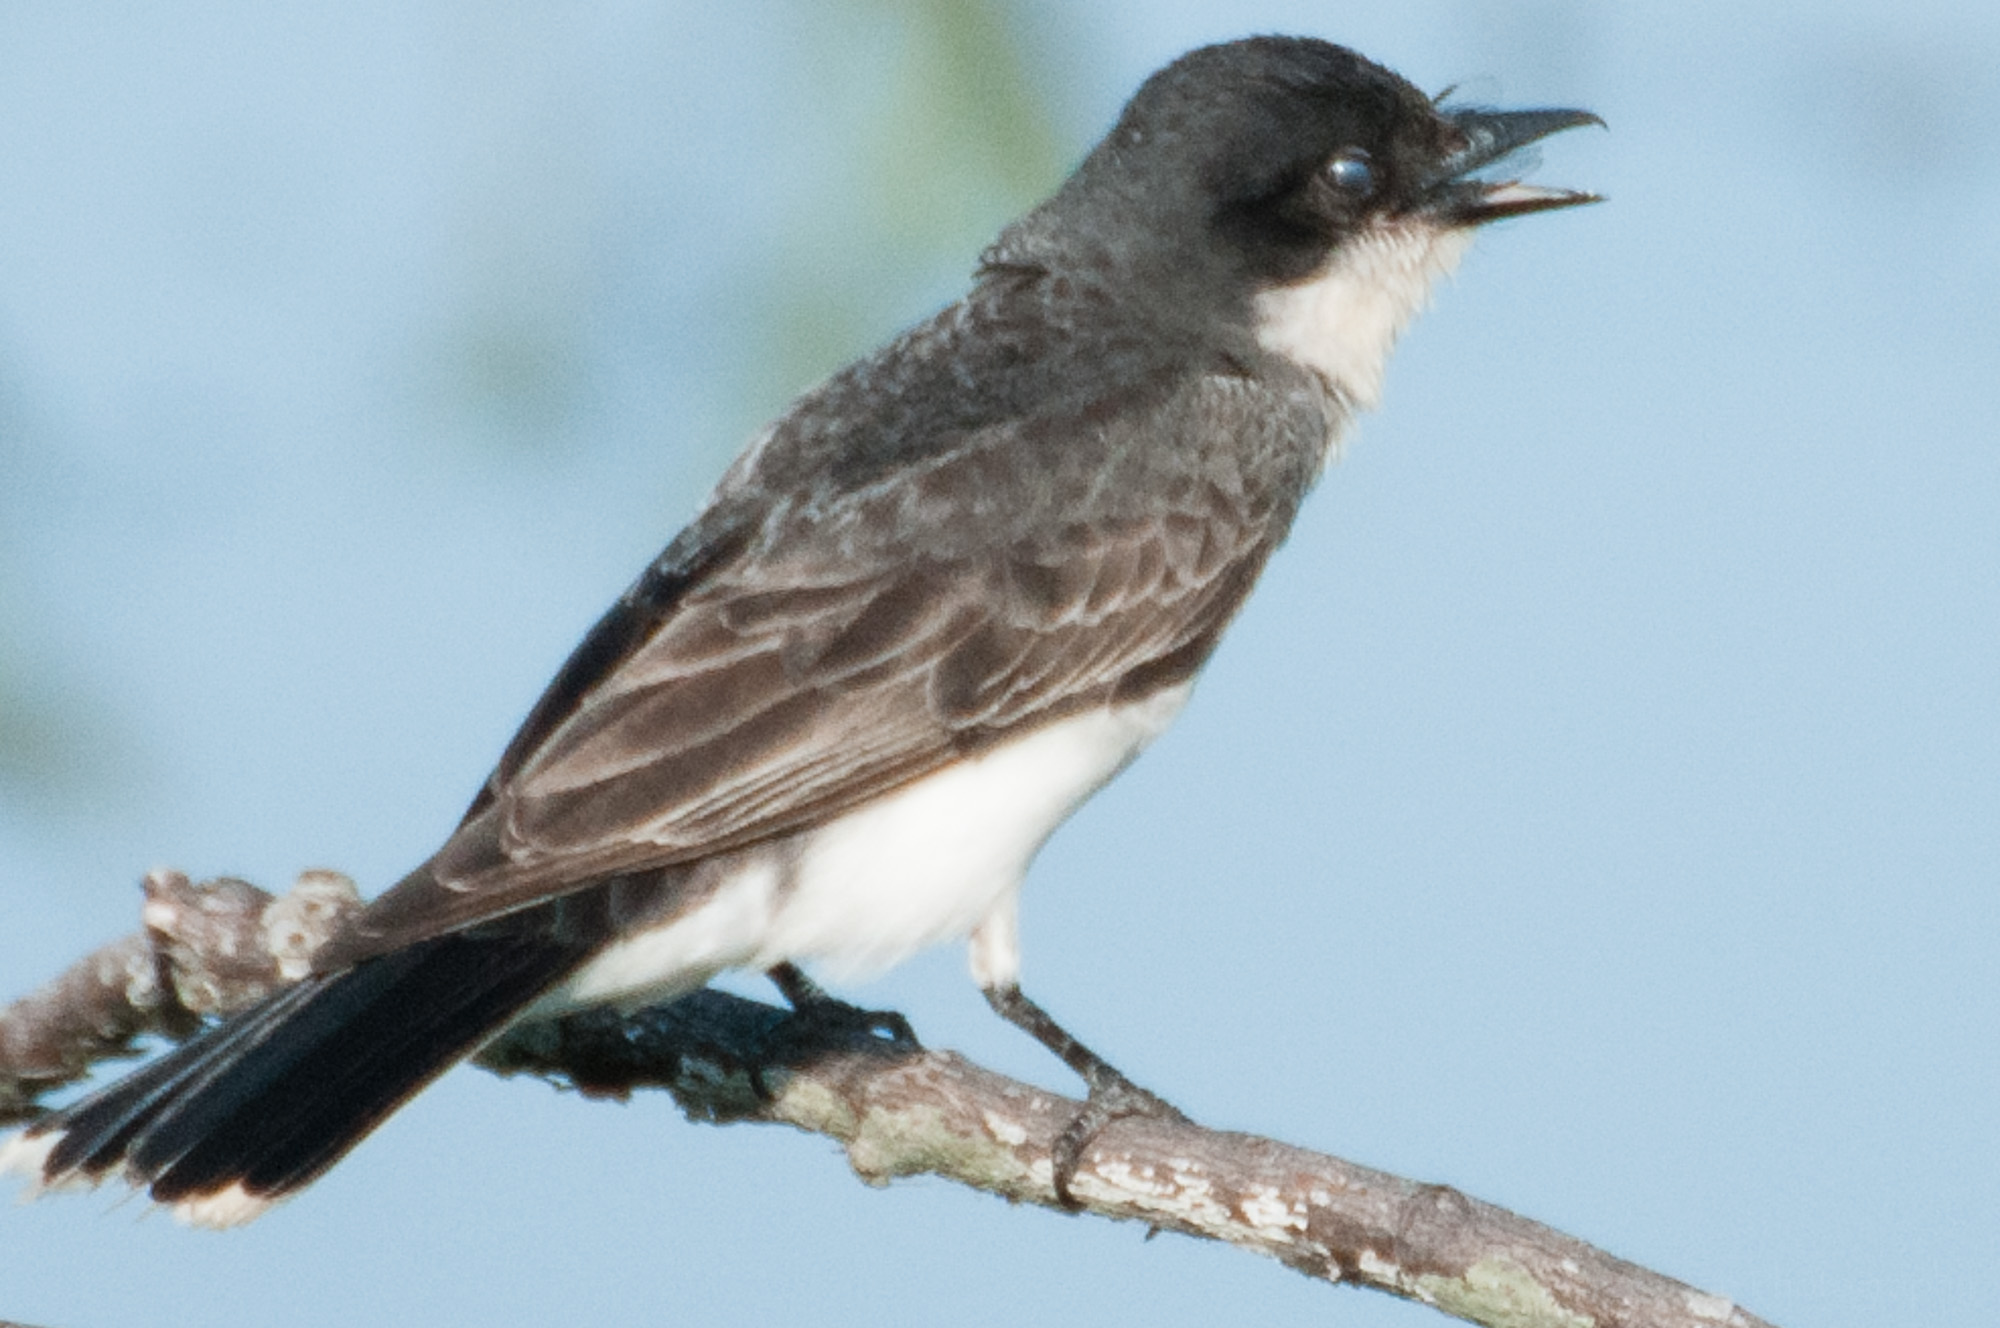 Eastern Phoebe with closed nictitating membrane over eye.